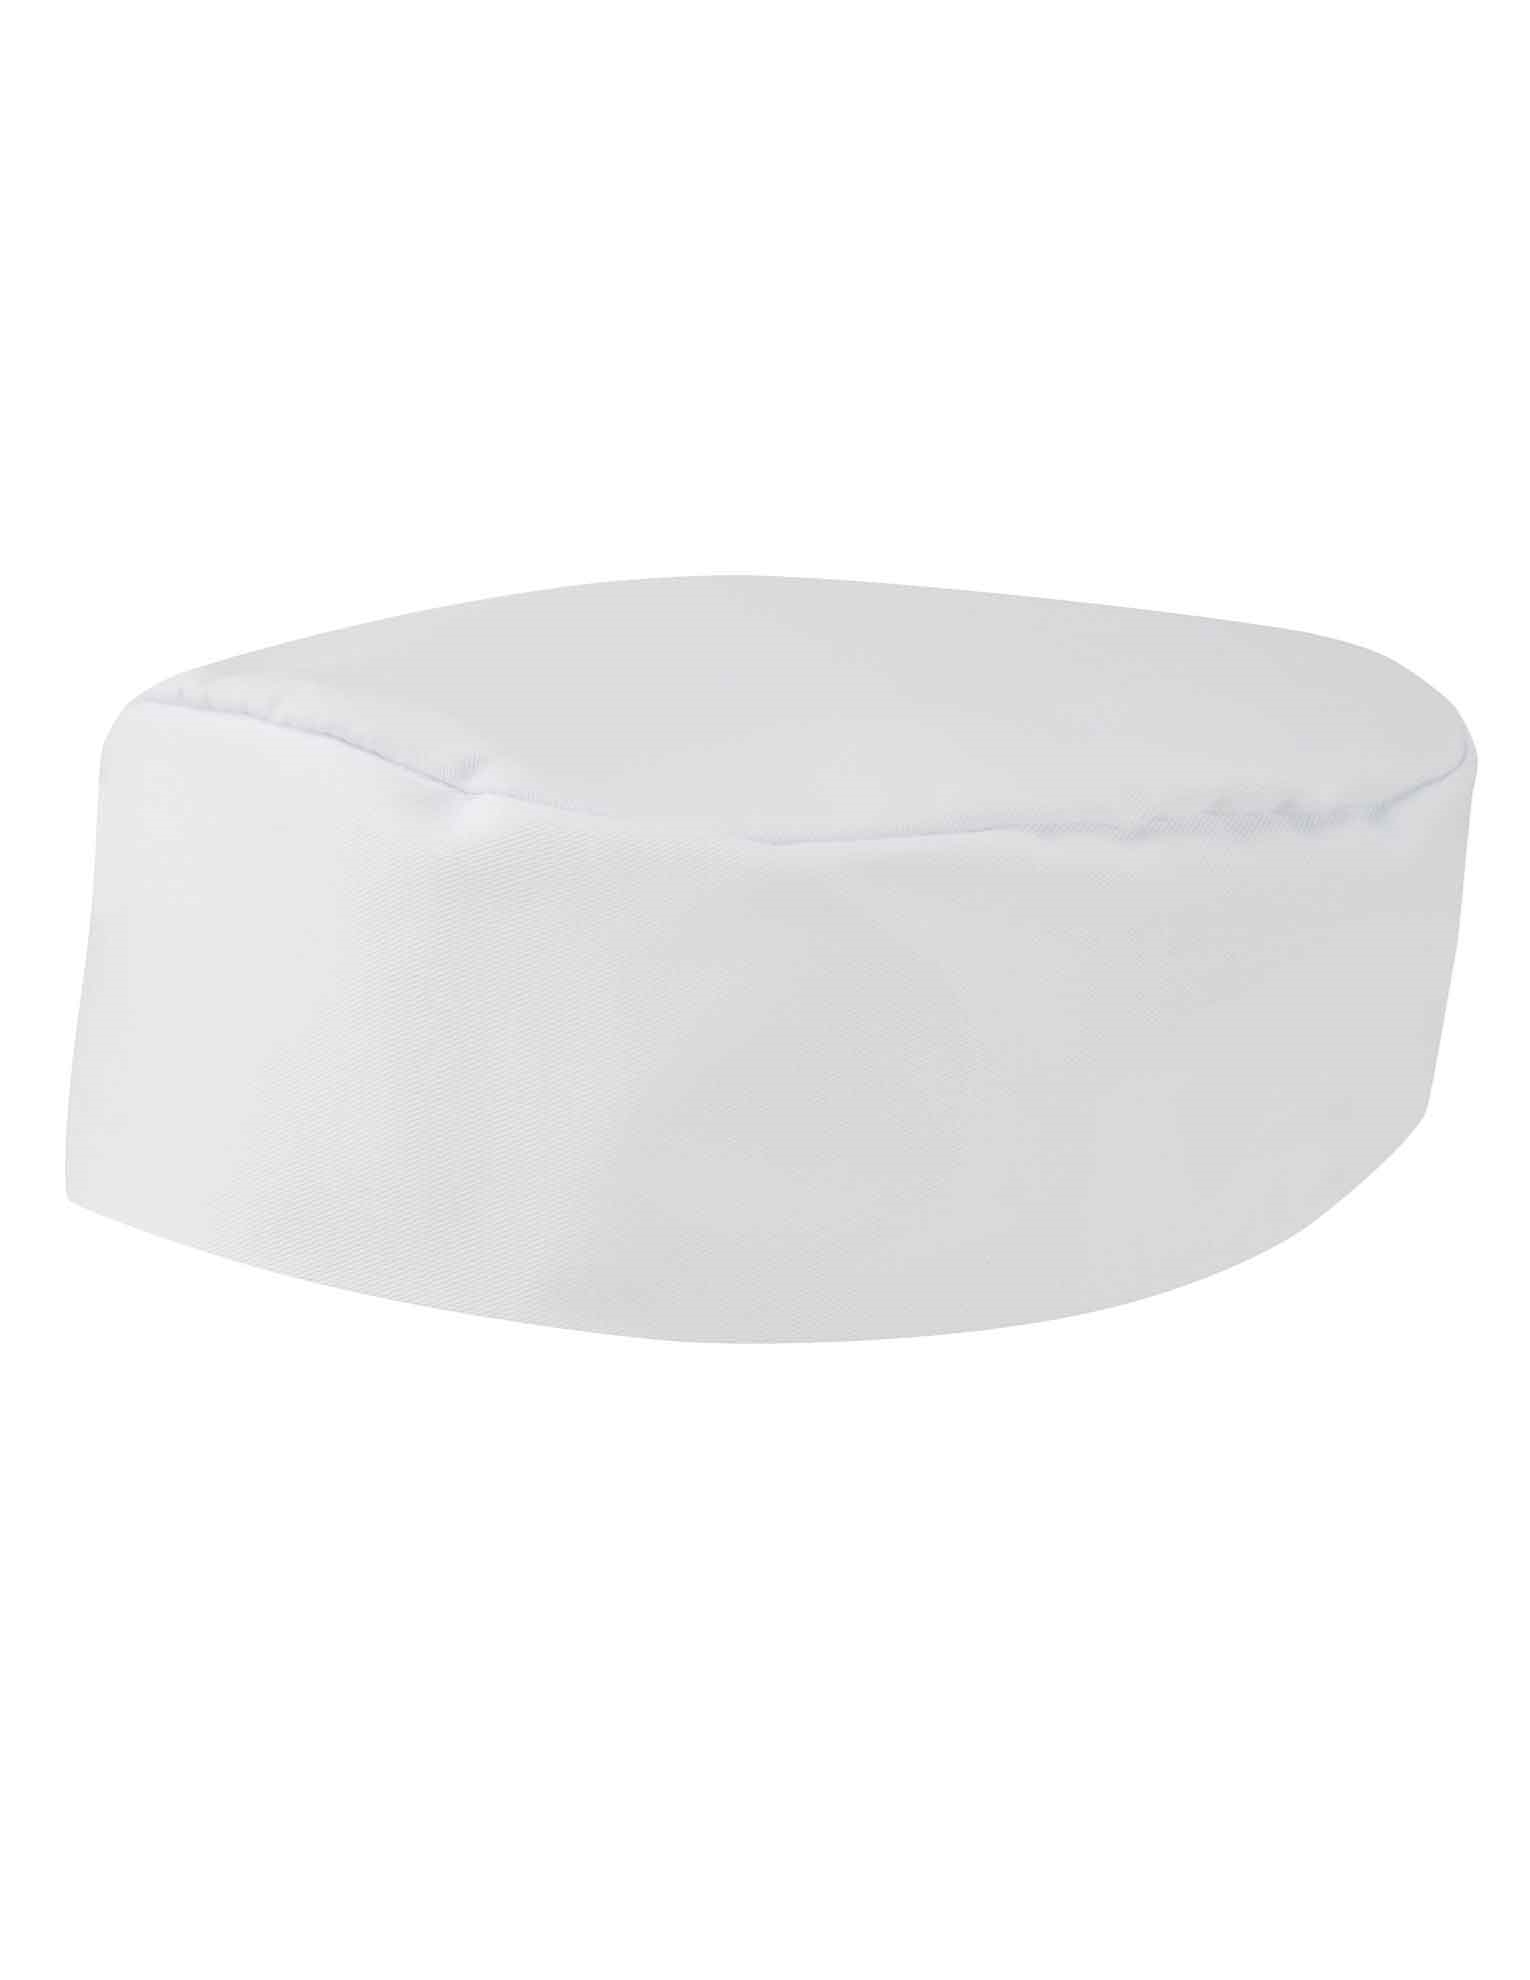 Picture of Chefs Skull Cap - White